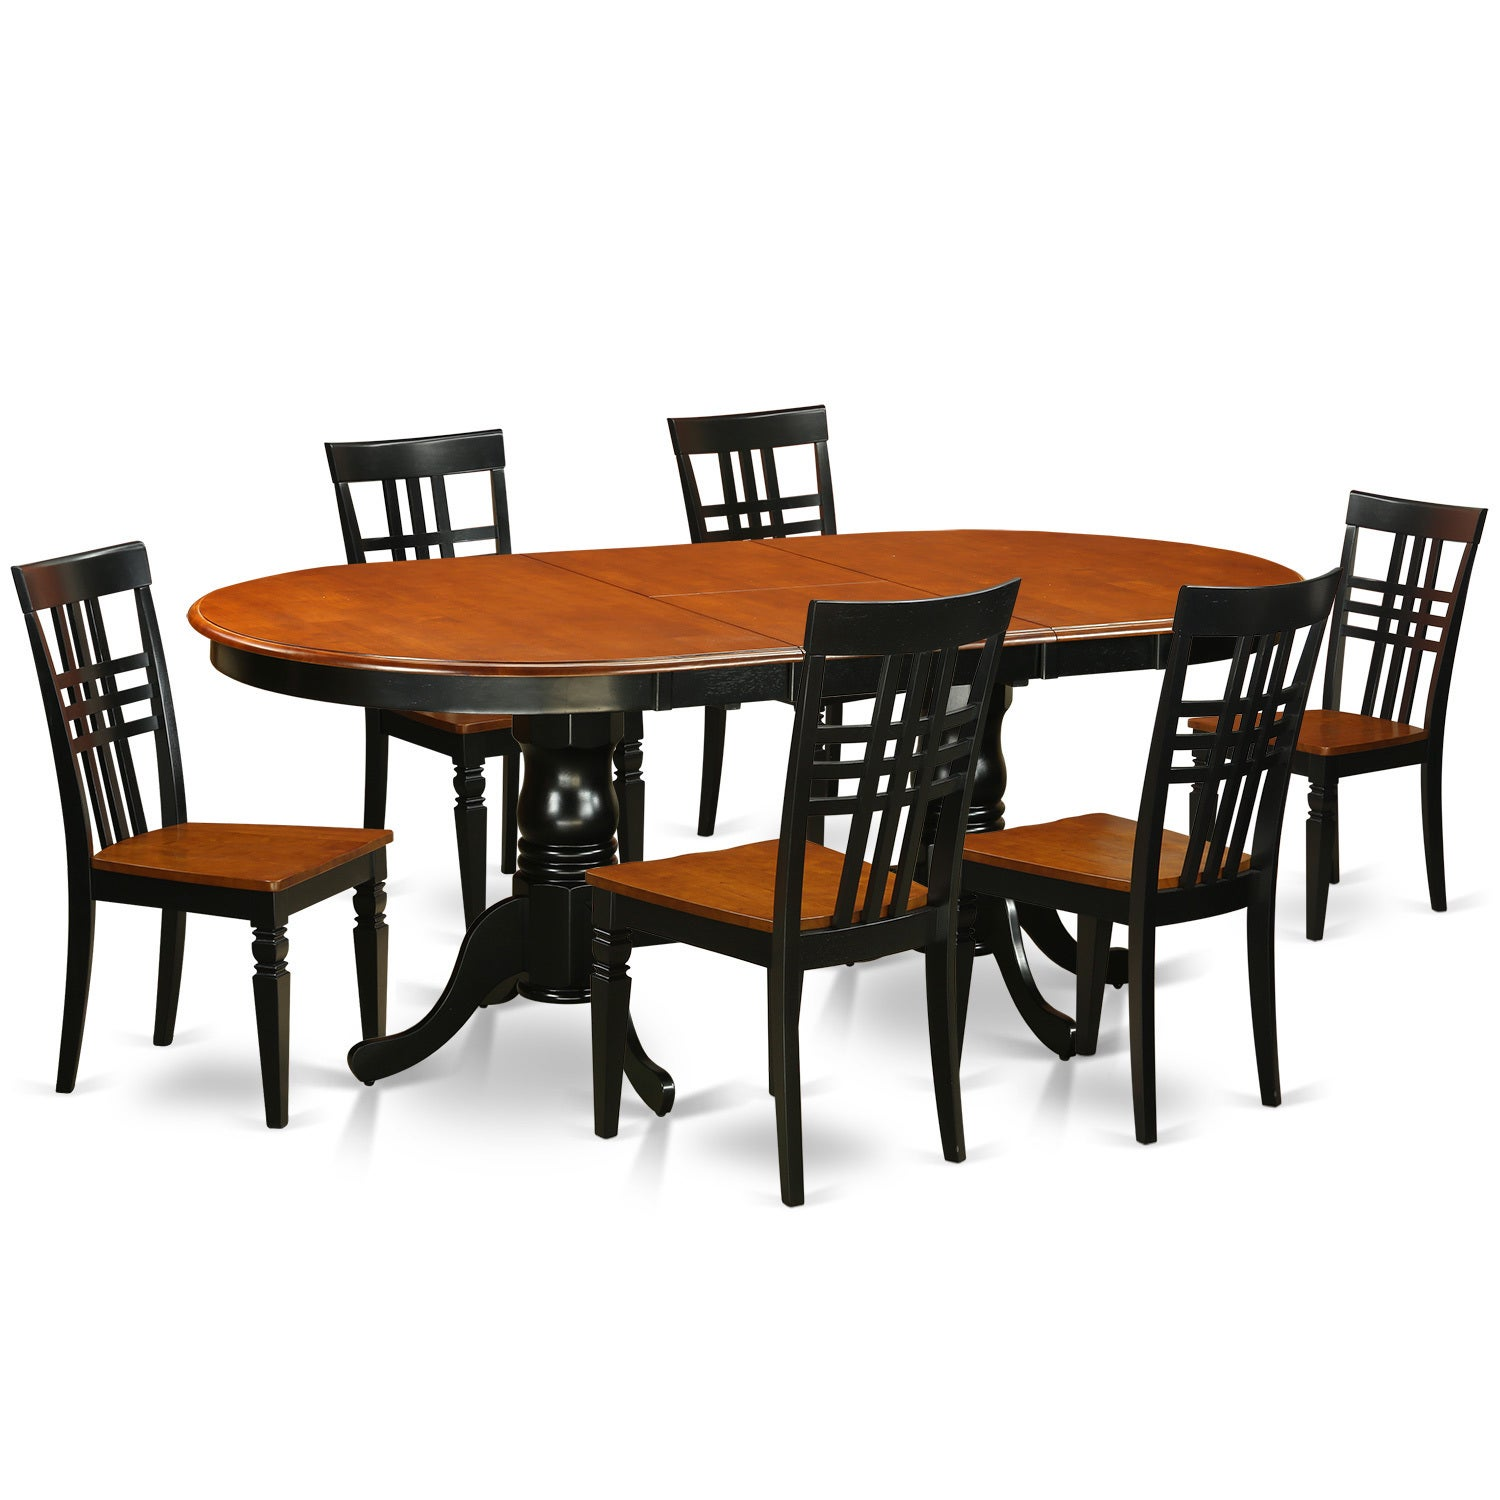 Shop Plainville 7-piece Dining Table and Chairs Set - Free Shipping Today -  Overstock.com - 14366639 daece07ae4e7